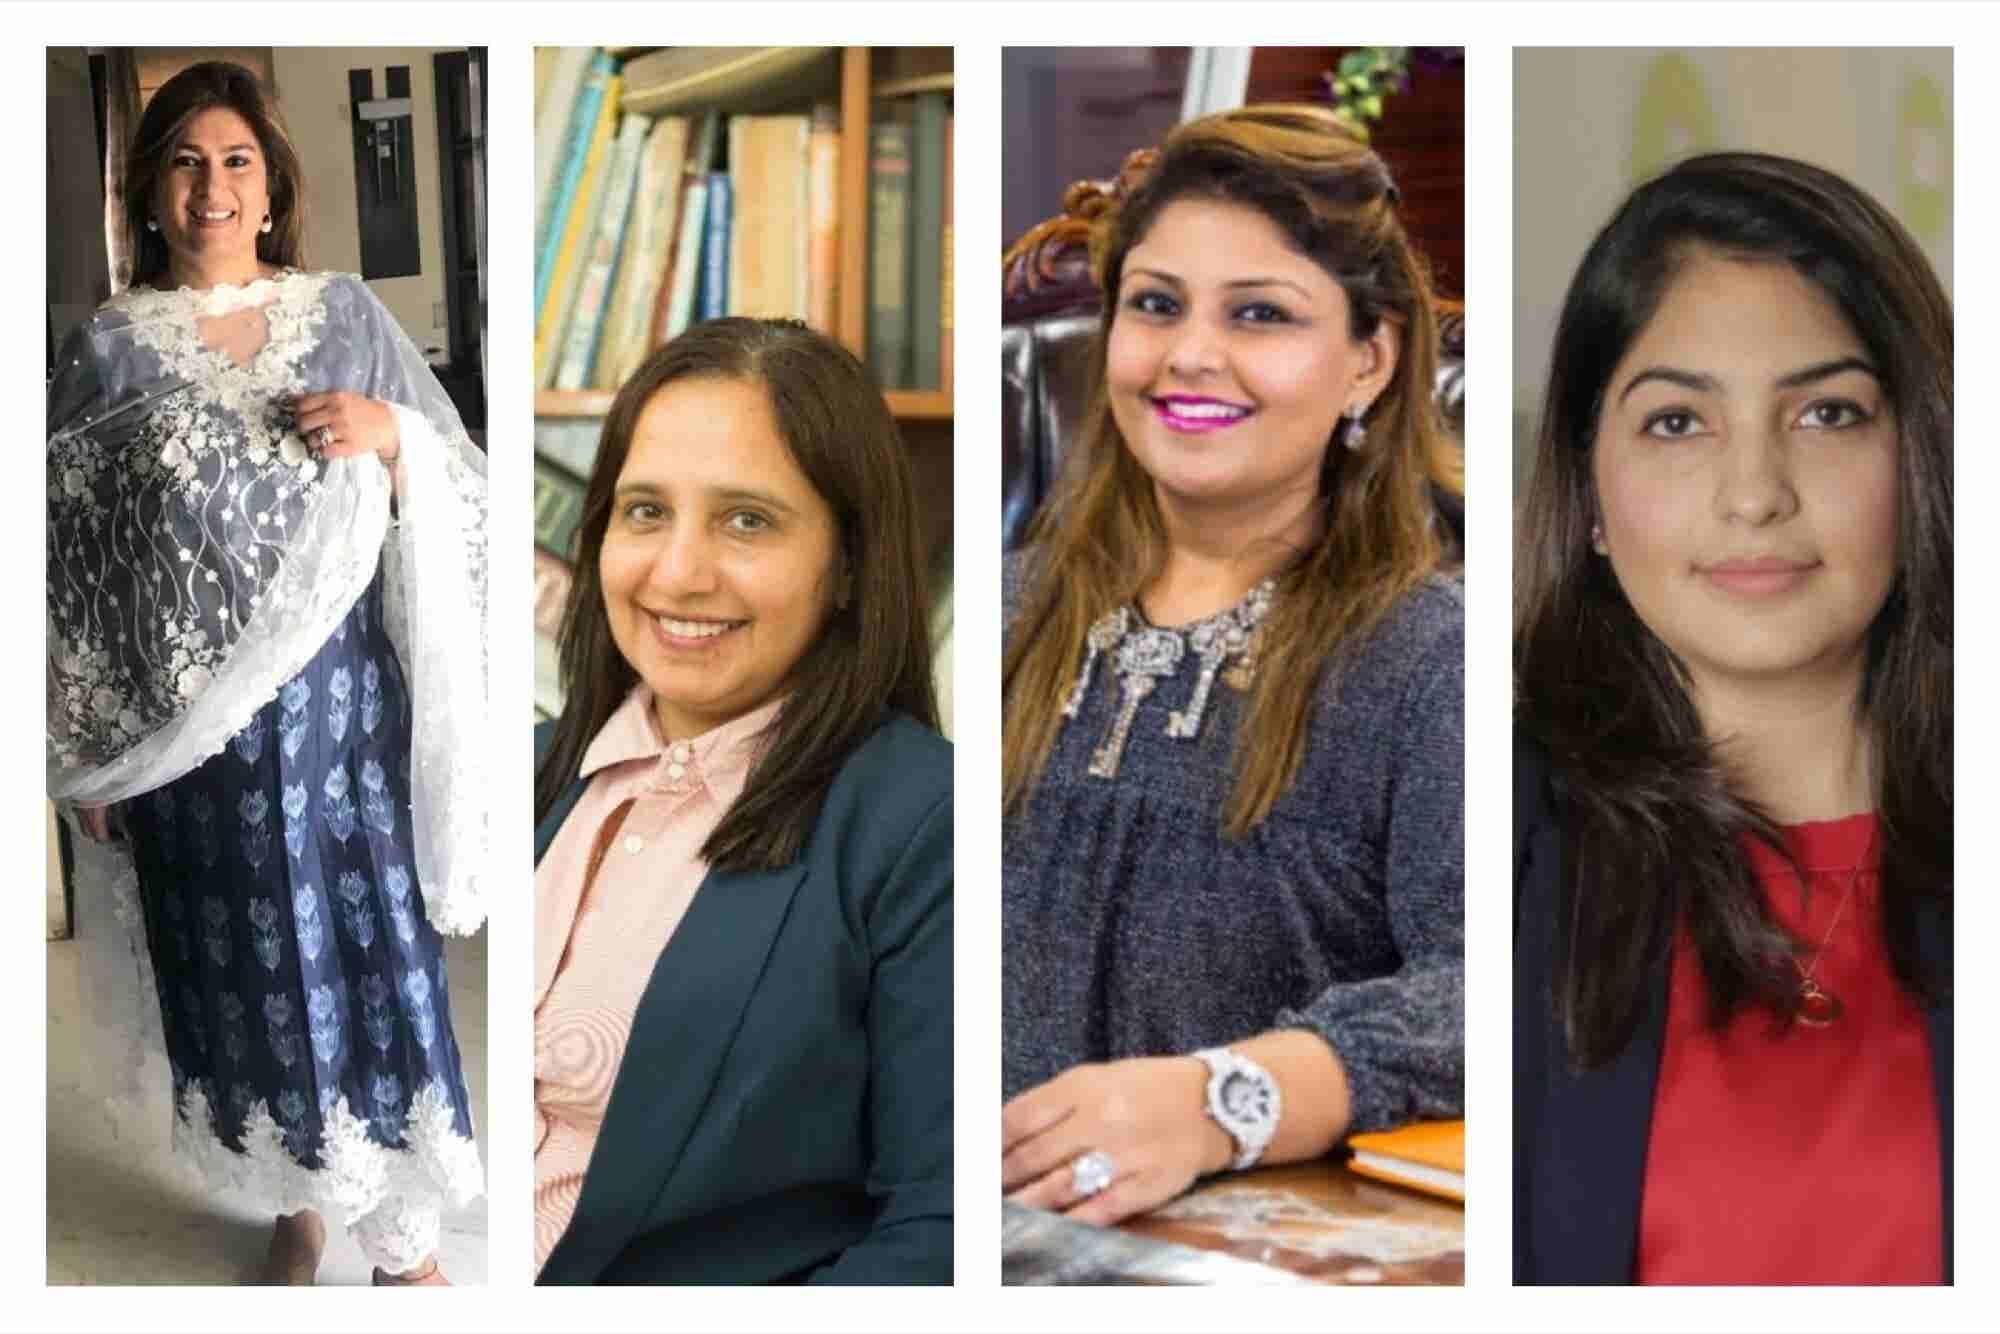 'It Wasn't Easy'; Mompreneurs Share Their Most Difficult Moments